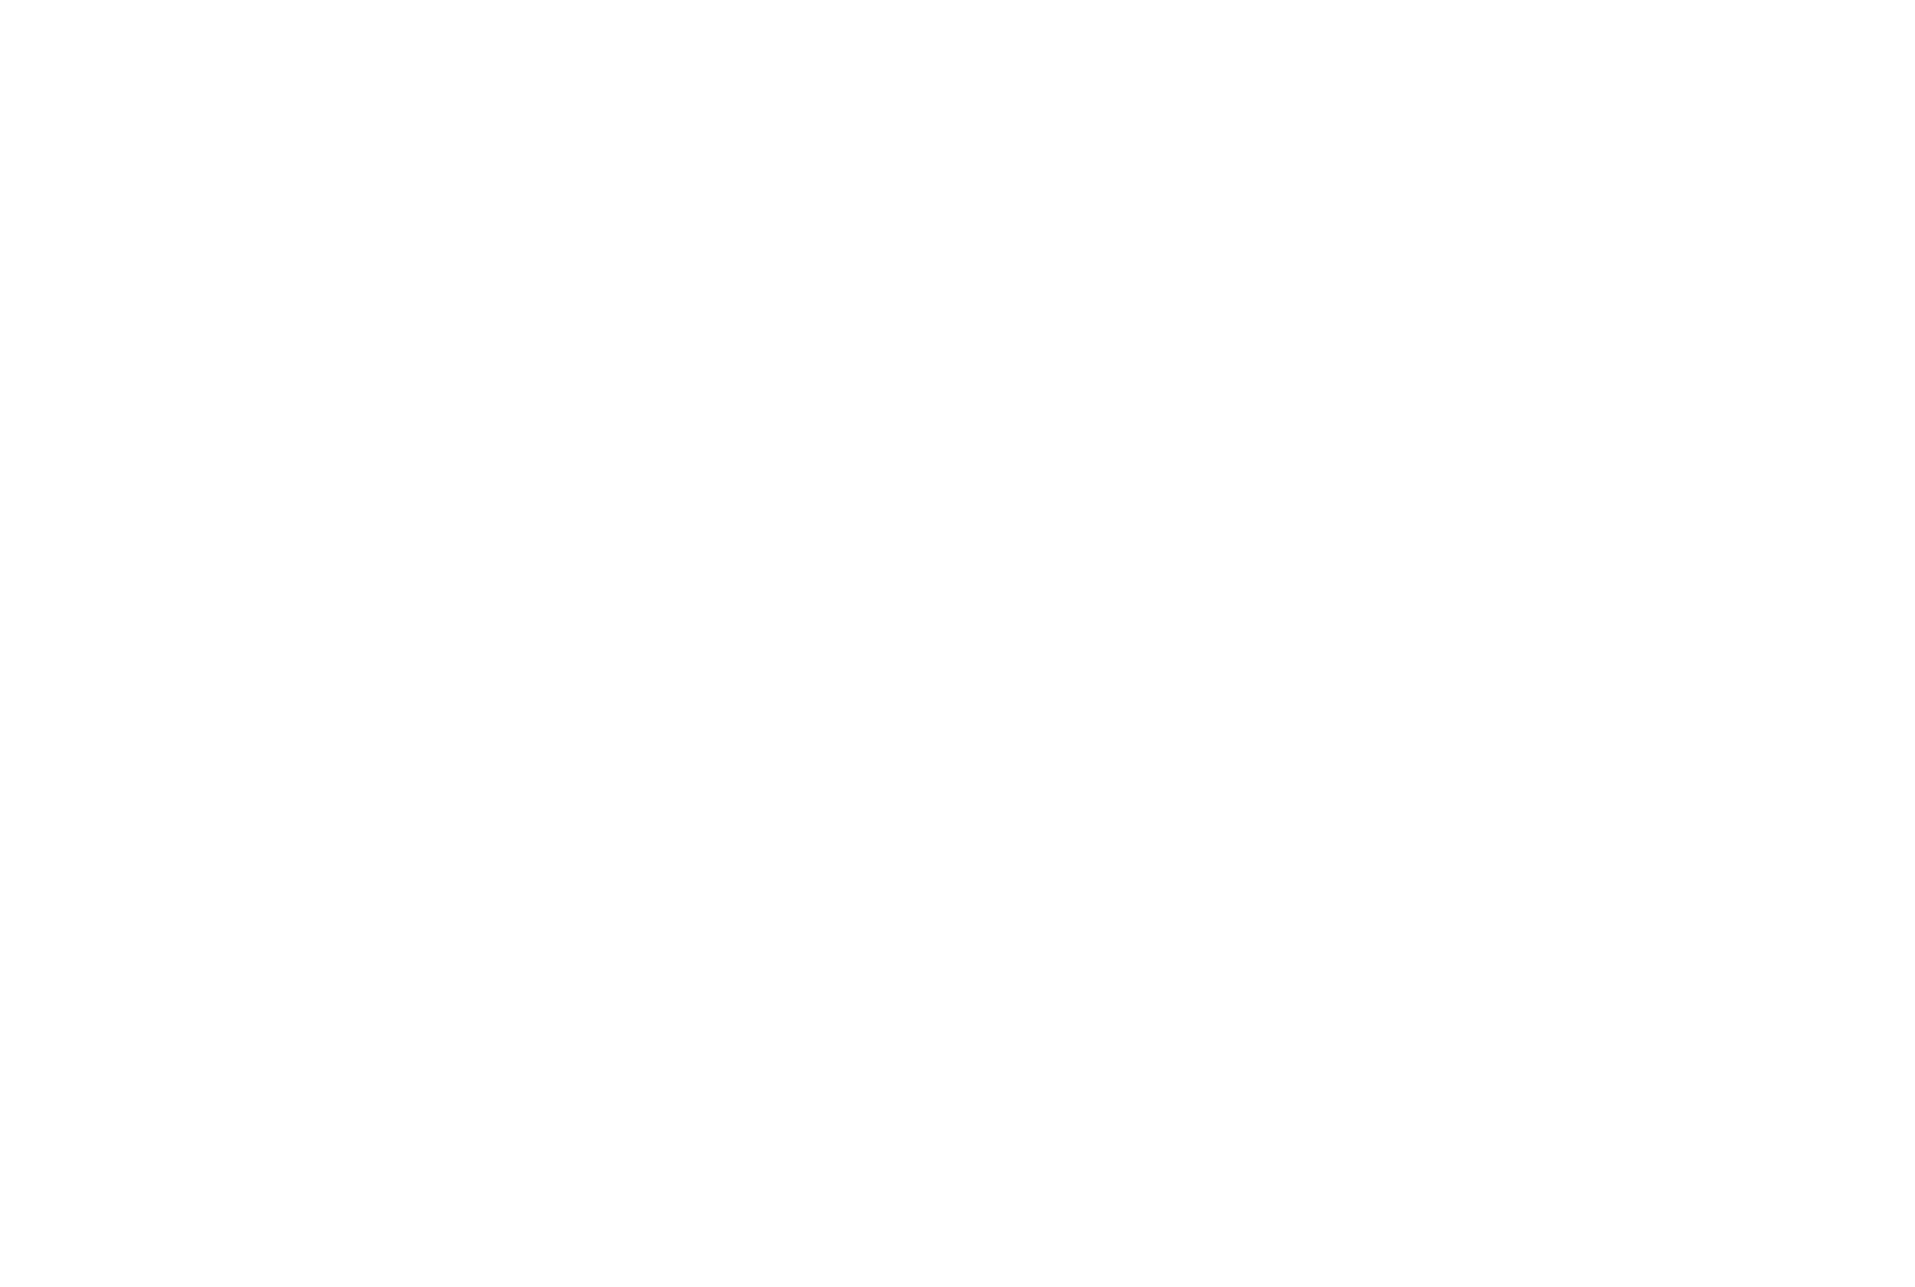 Next Great Minds Campaign